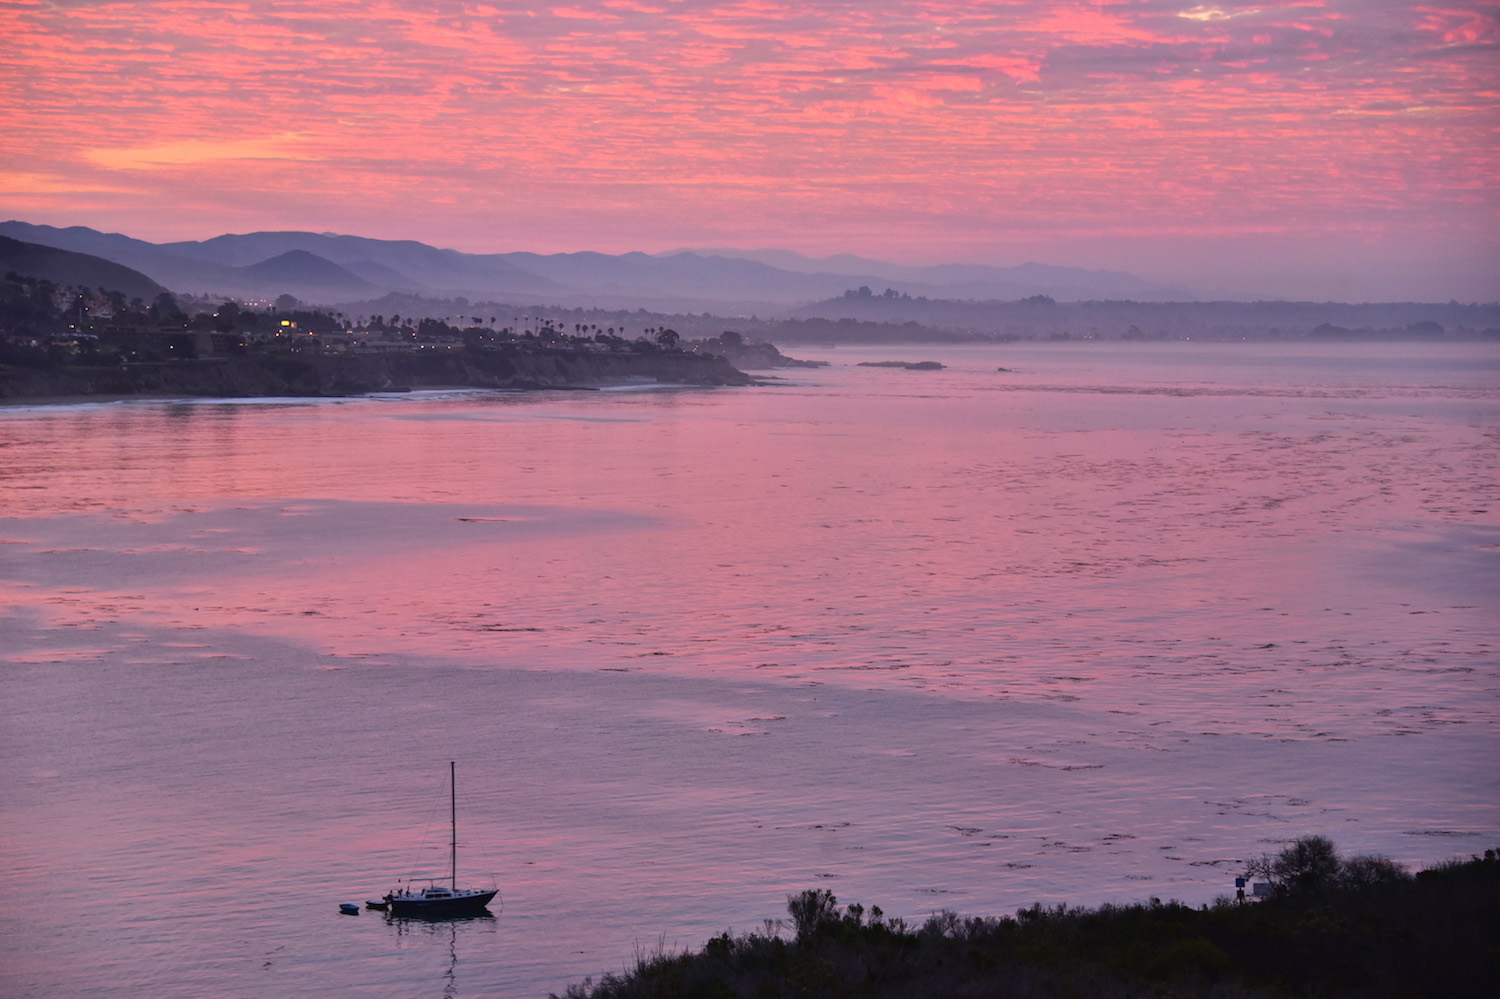 Sunrise in Pismo Beach, CA